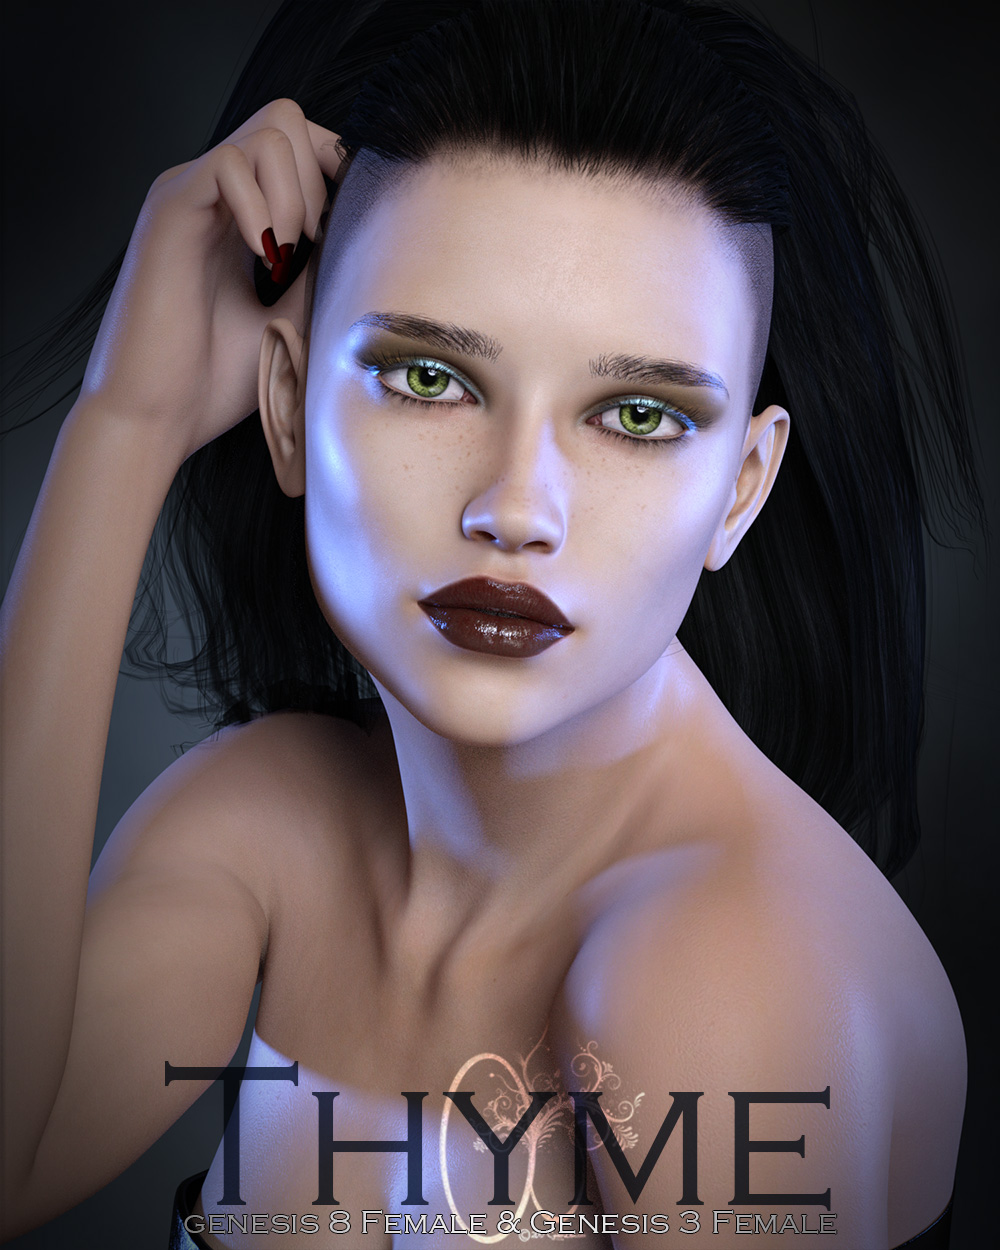 CB Thyme for Genesis 3 and 8 Female by: CynderBlue, 3D Models by Daz 3D